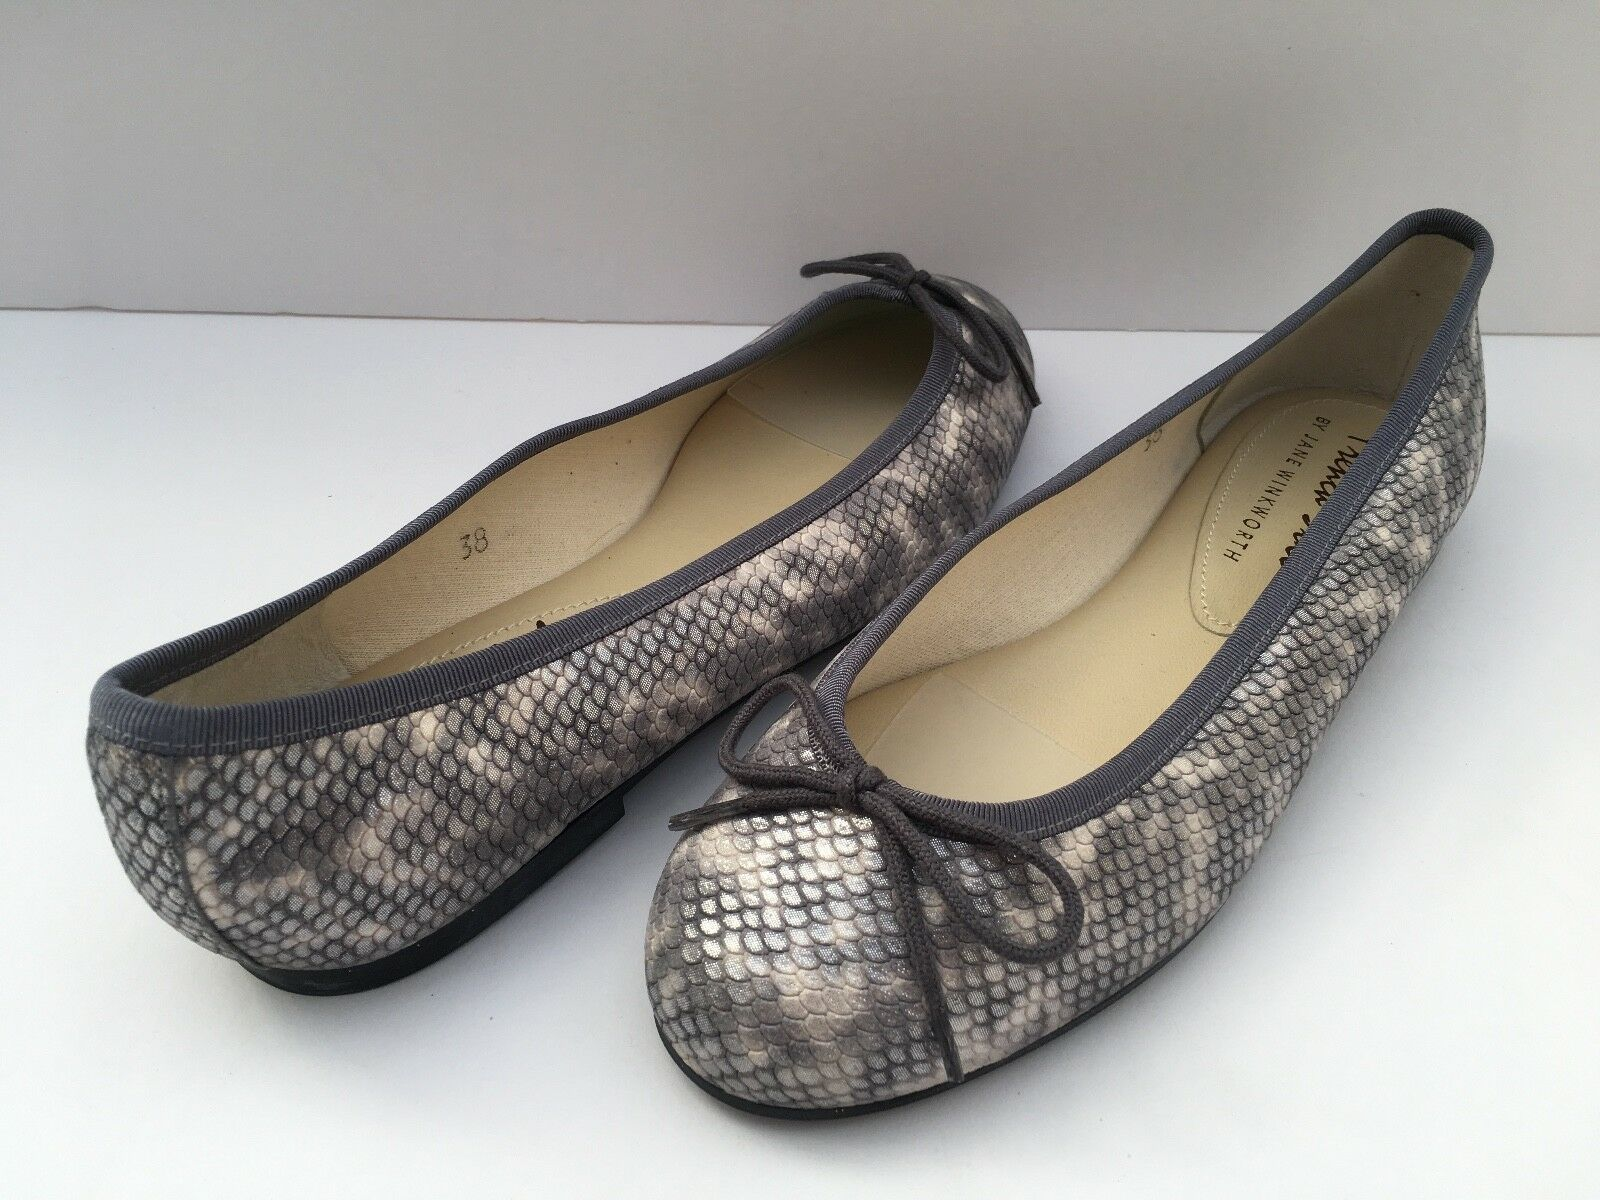 FRENCH SOLE JANE WINKWORTH HENRIETTA gris FISHSCALE SUEDE PUMPS Taille UK 5 EU 38